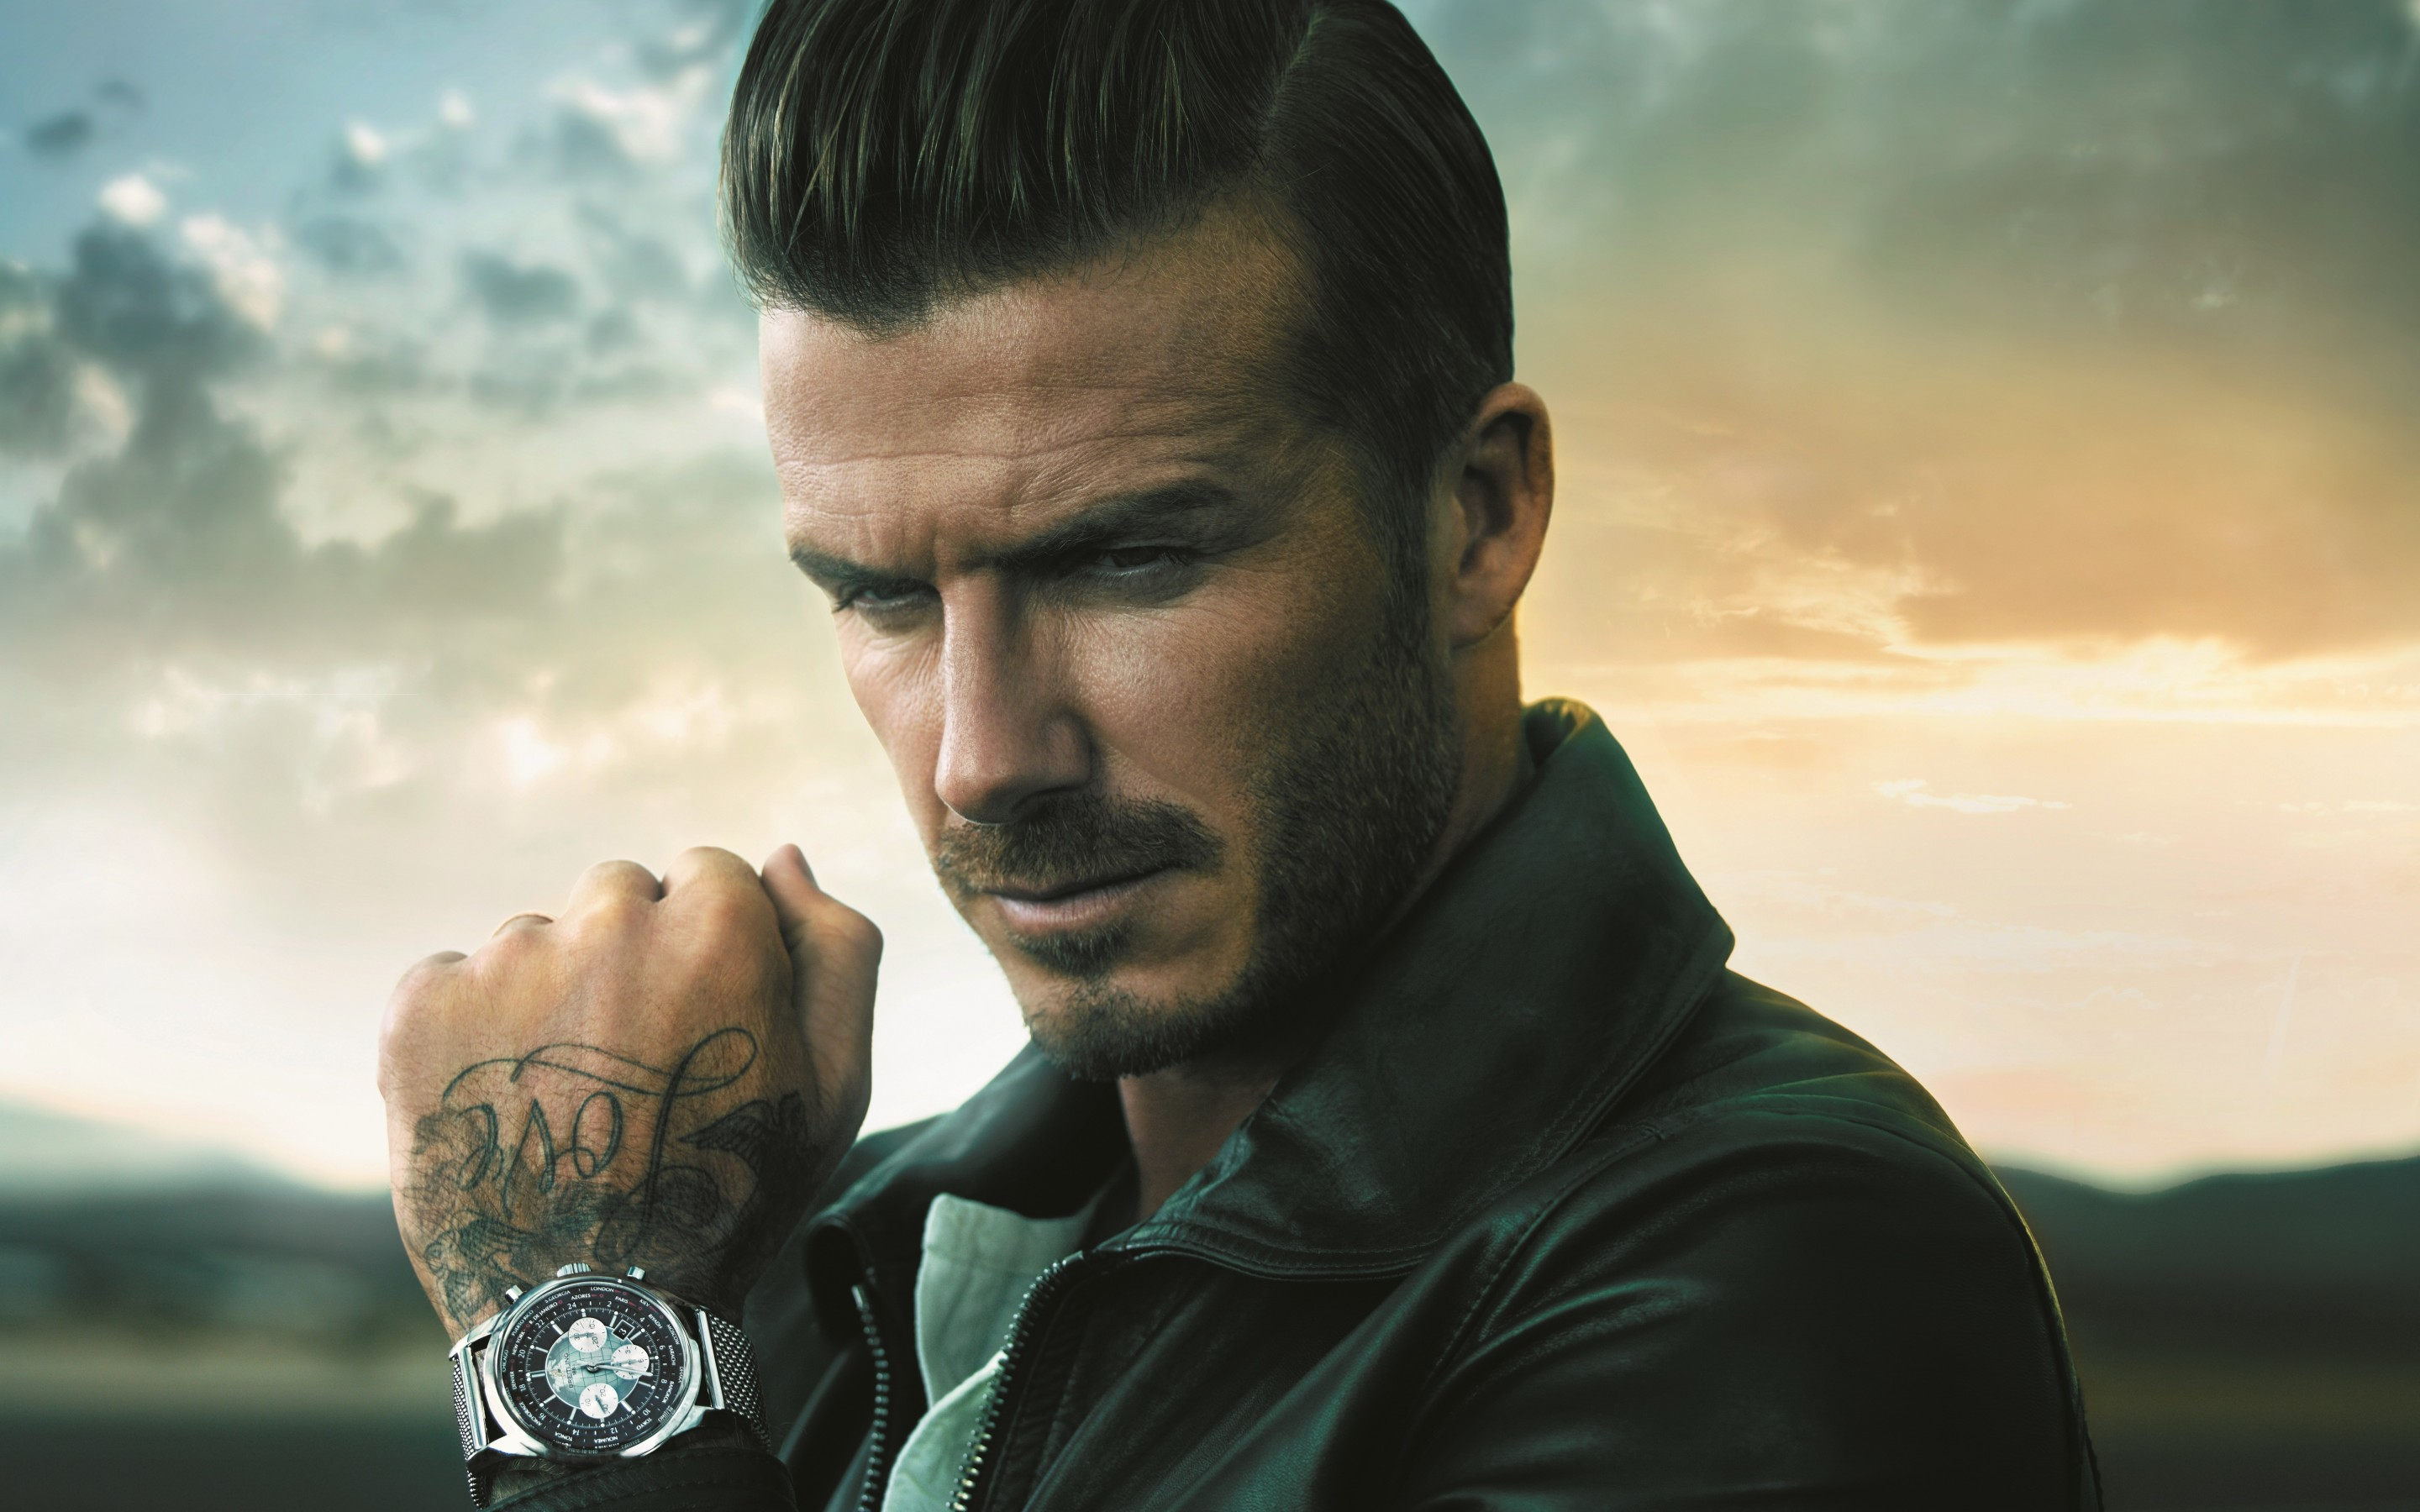 David Beckham New Hd Pictures Wallpapers 2015 All Hd